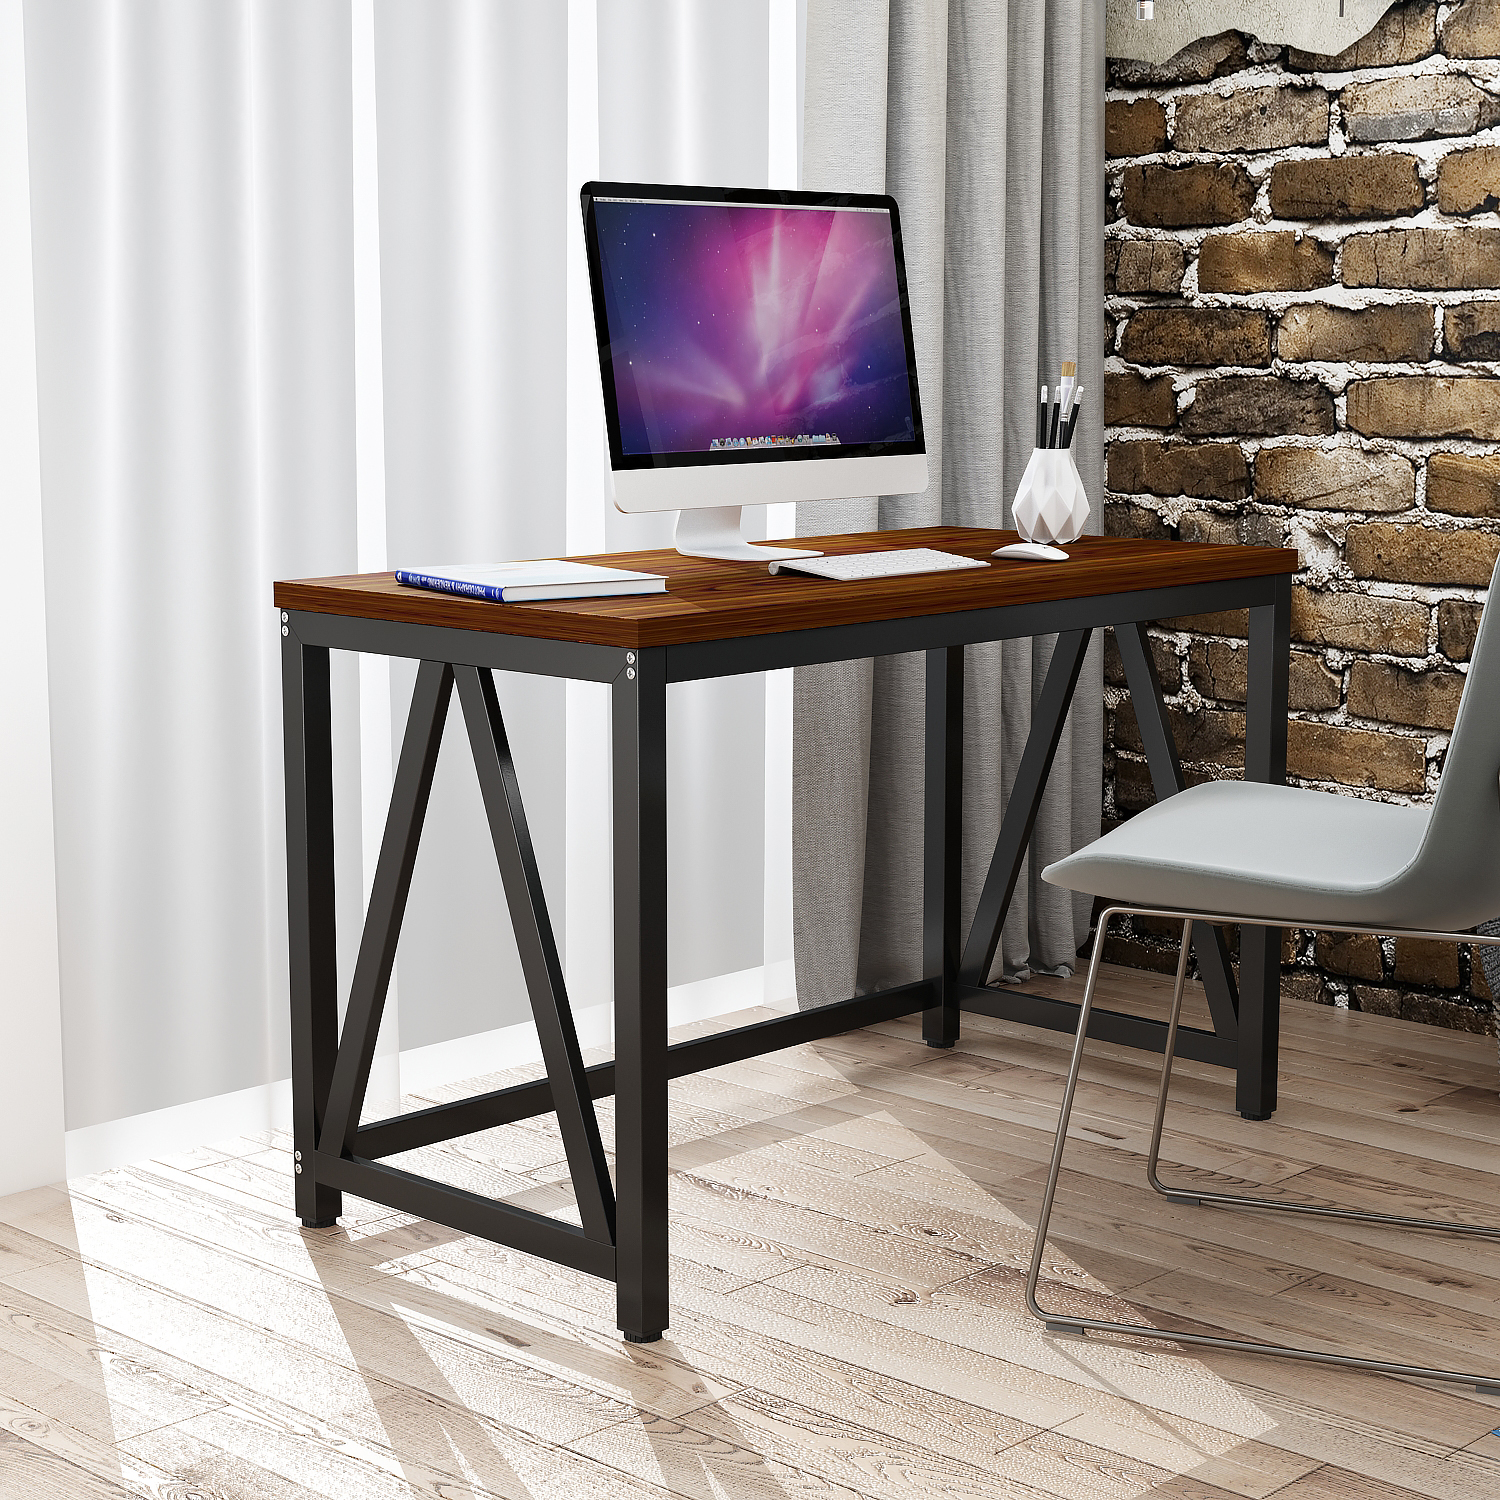 - Large Modern Computer Table Writing Desk Workstation For Home And